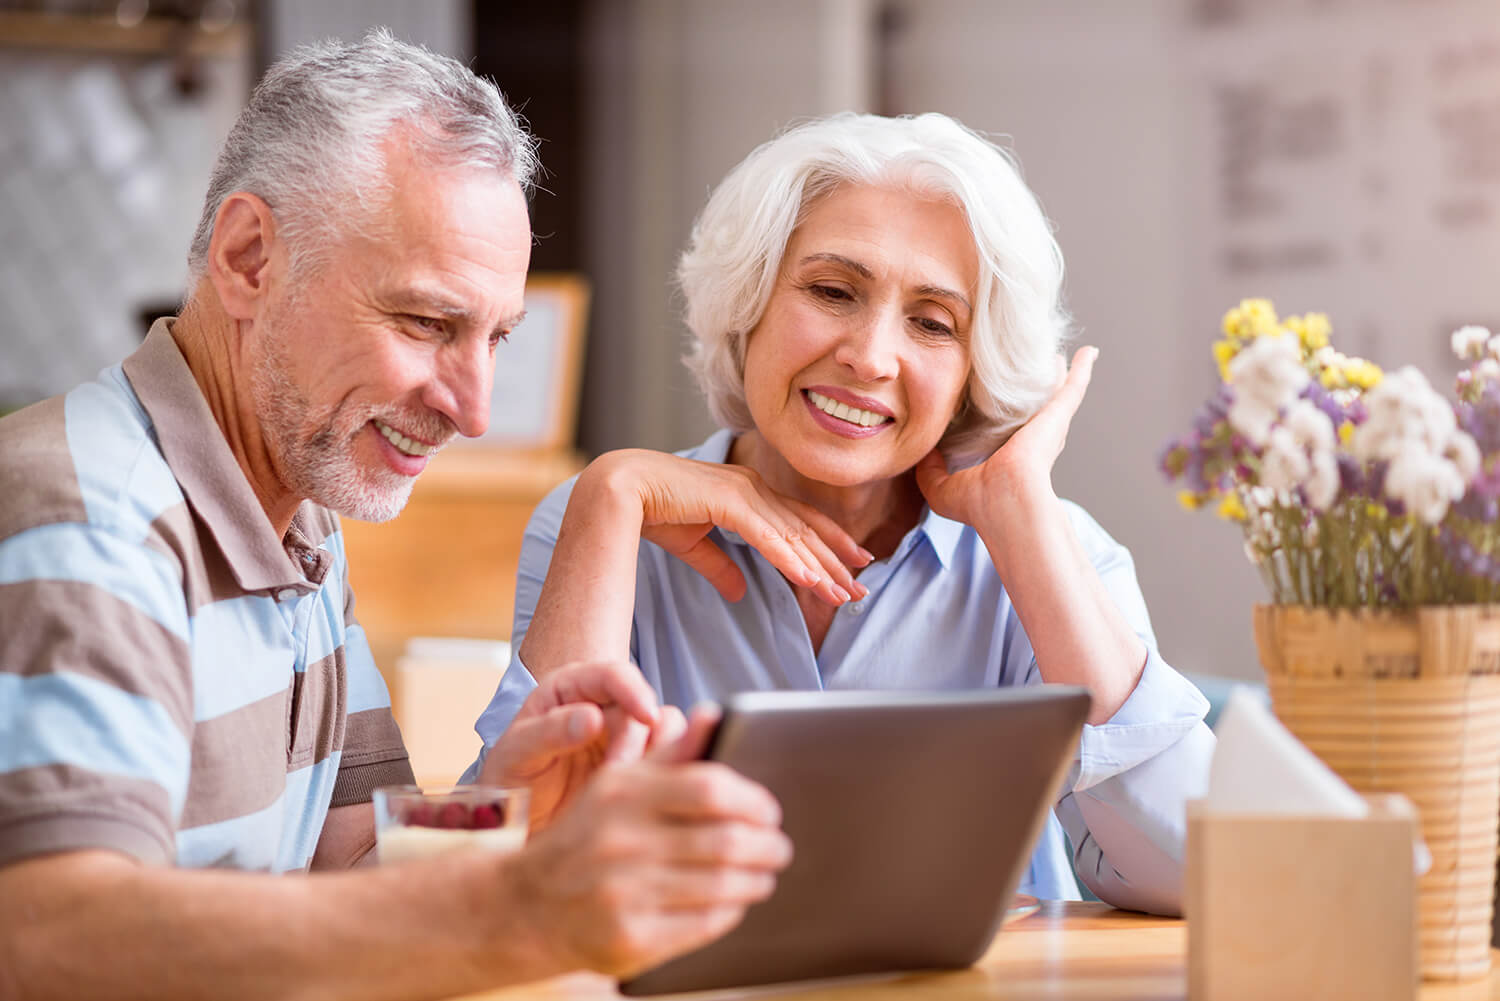 save your retirement money in a retirement fund or superannuation fund